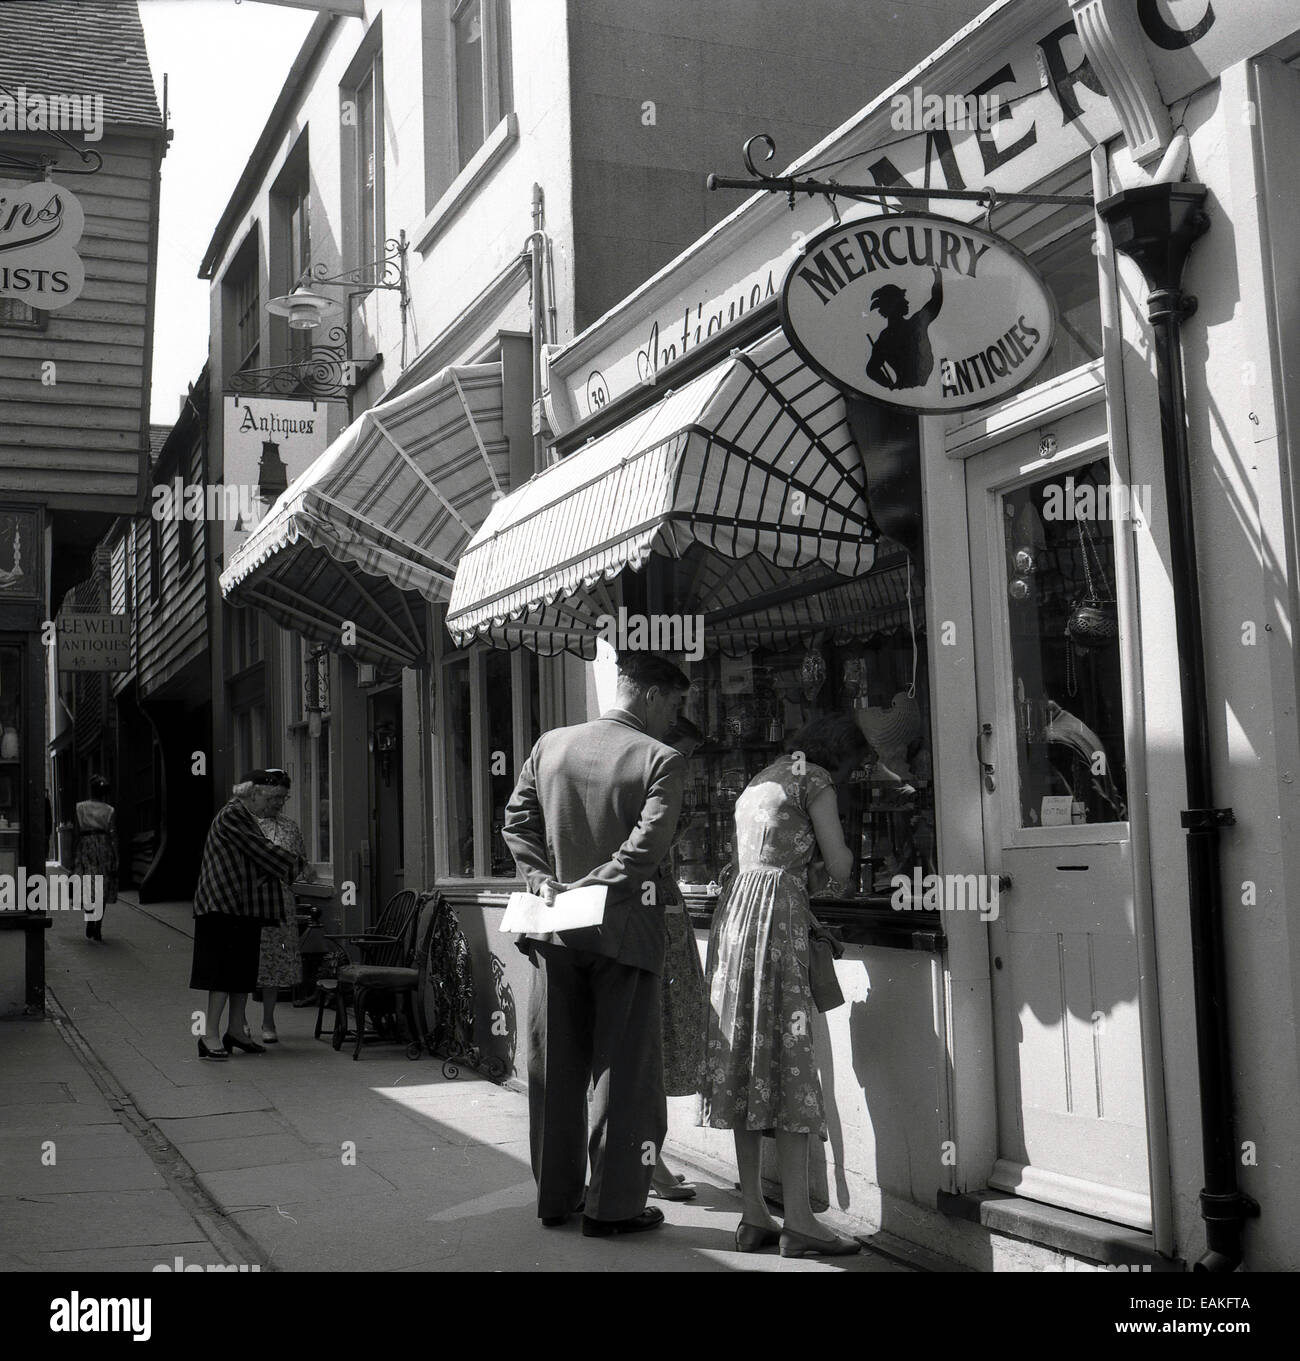 1950s, historical, a couple looking in the window of an antique shop, in an alleyway in the old part of Hastings, - Stock Image